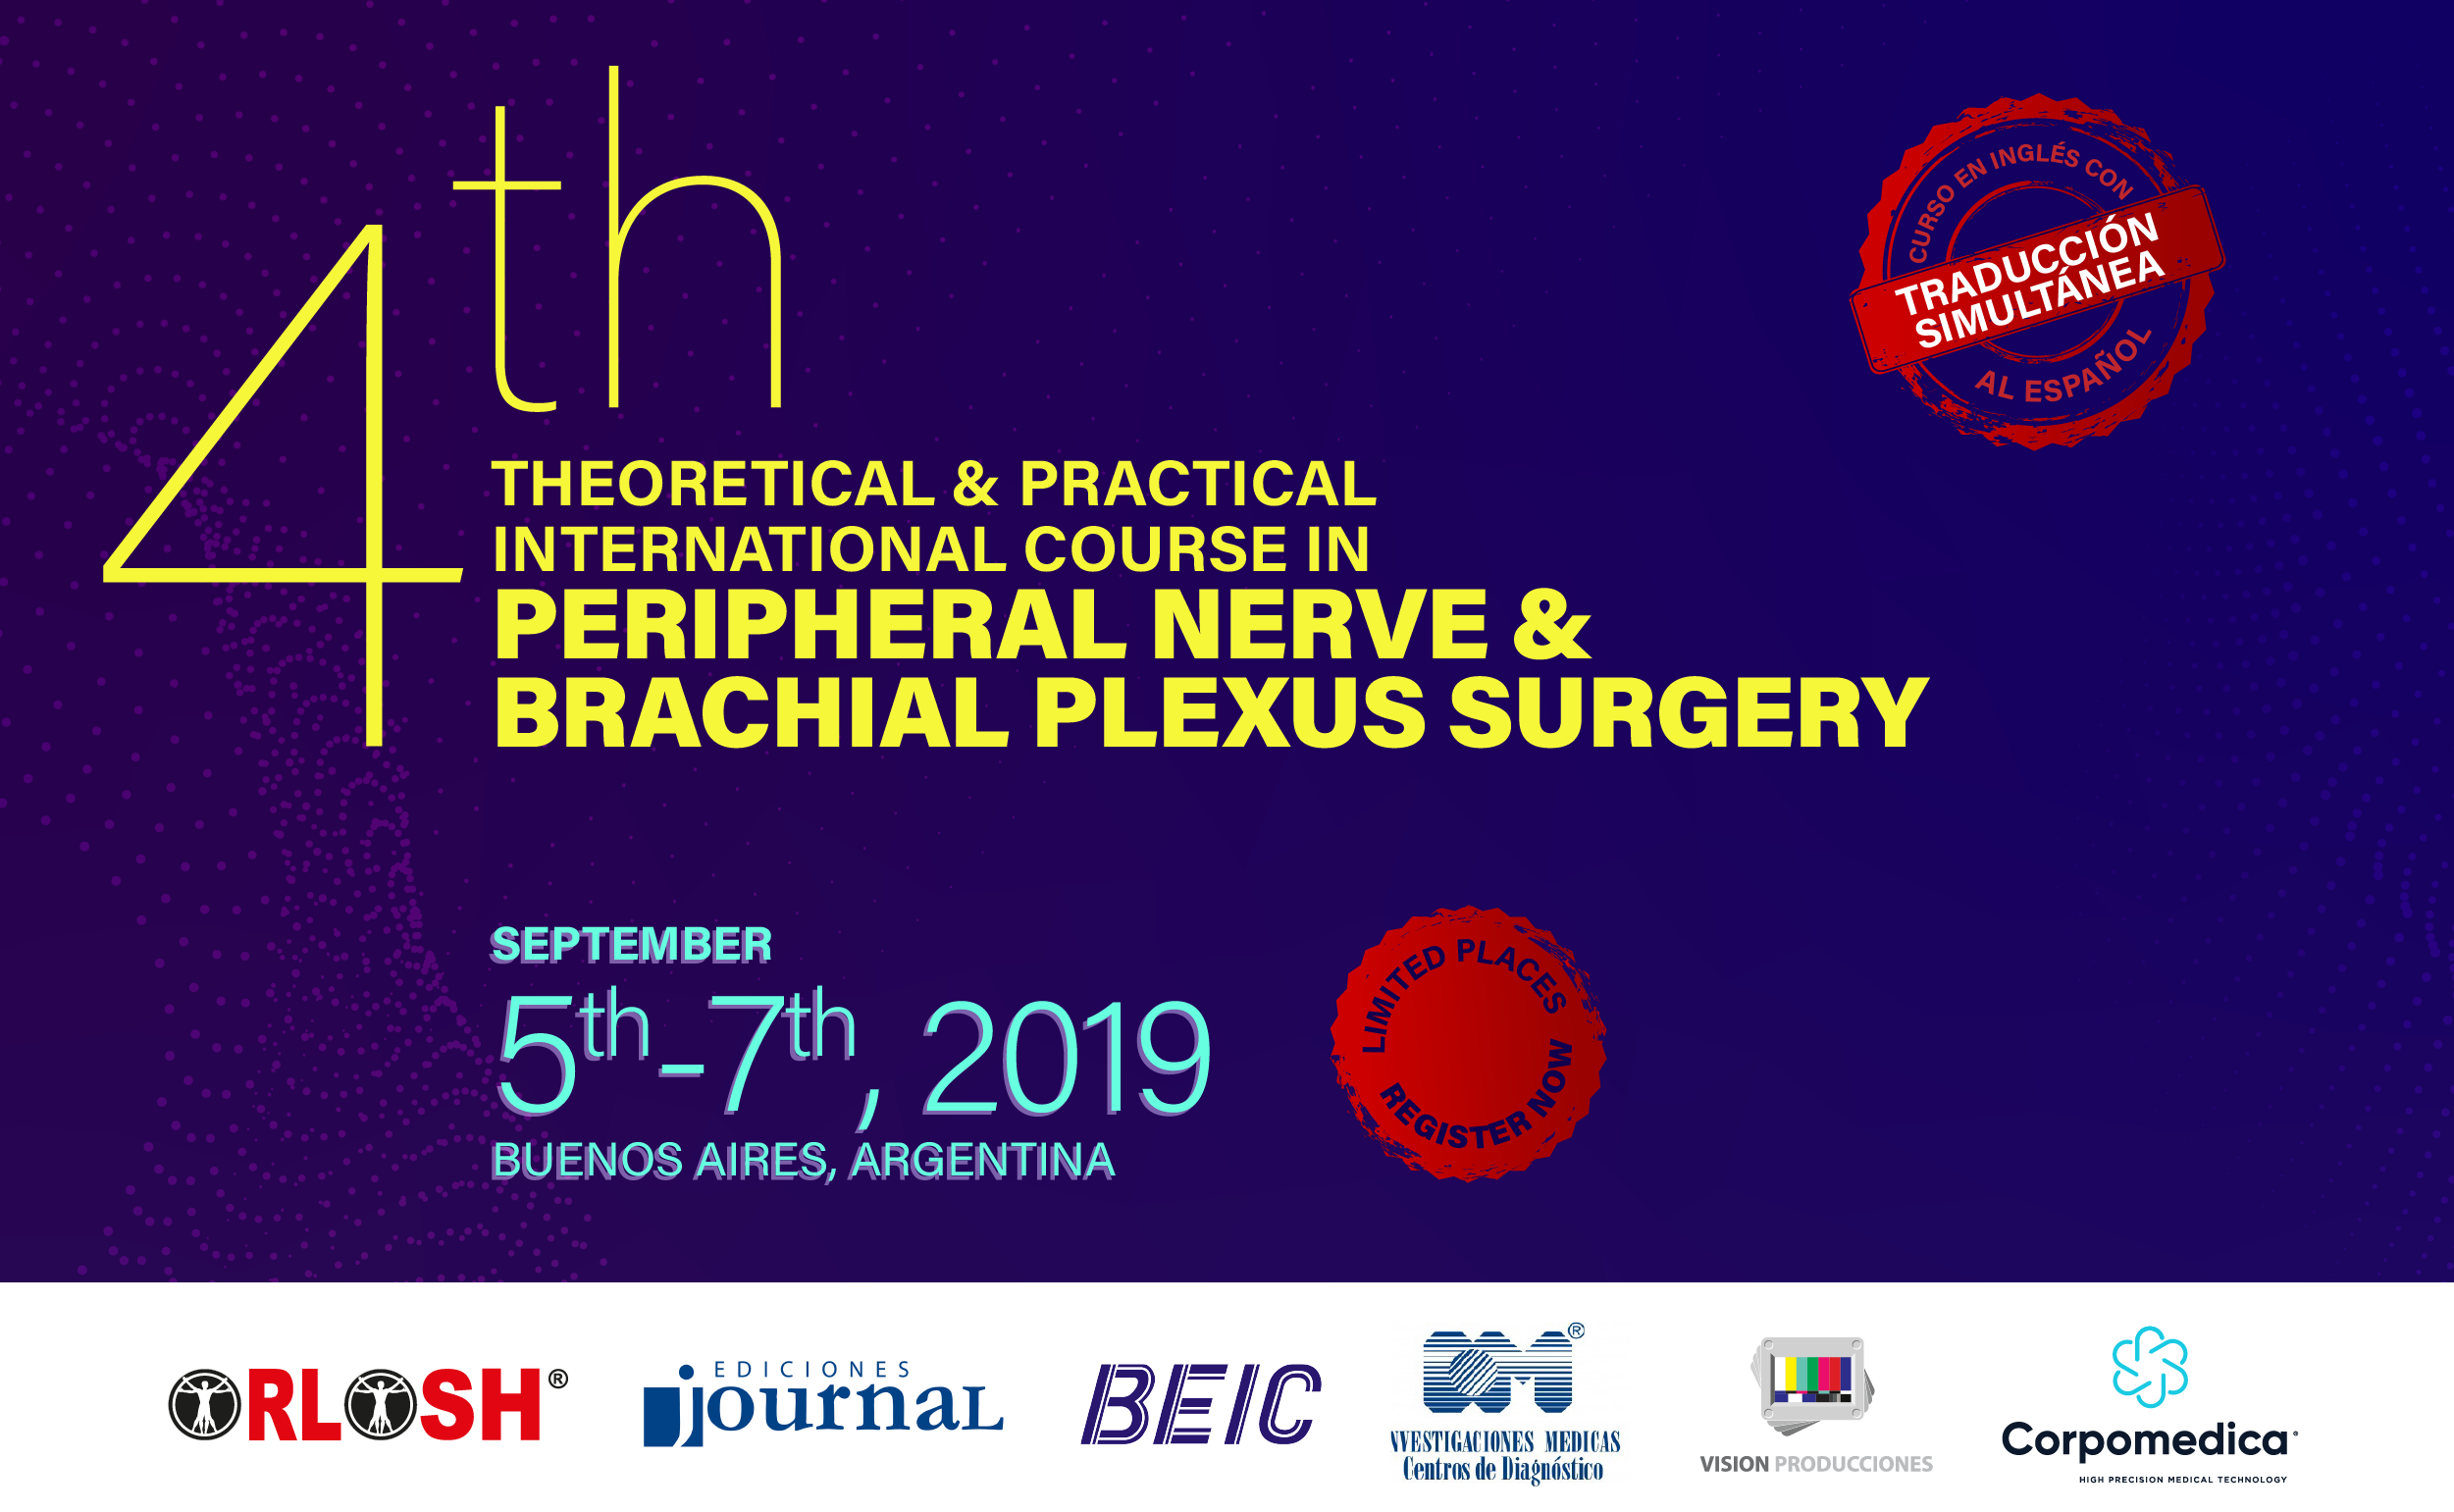 Theoretical & Practical International Course in Peripheral Nerve & Branchial Plexus Surgery